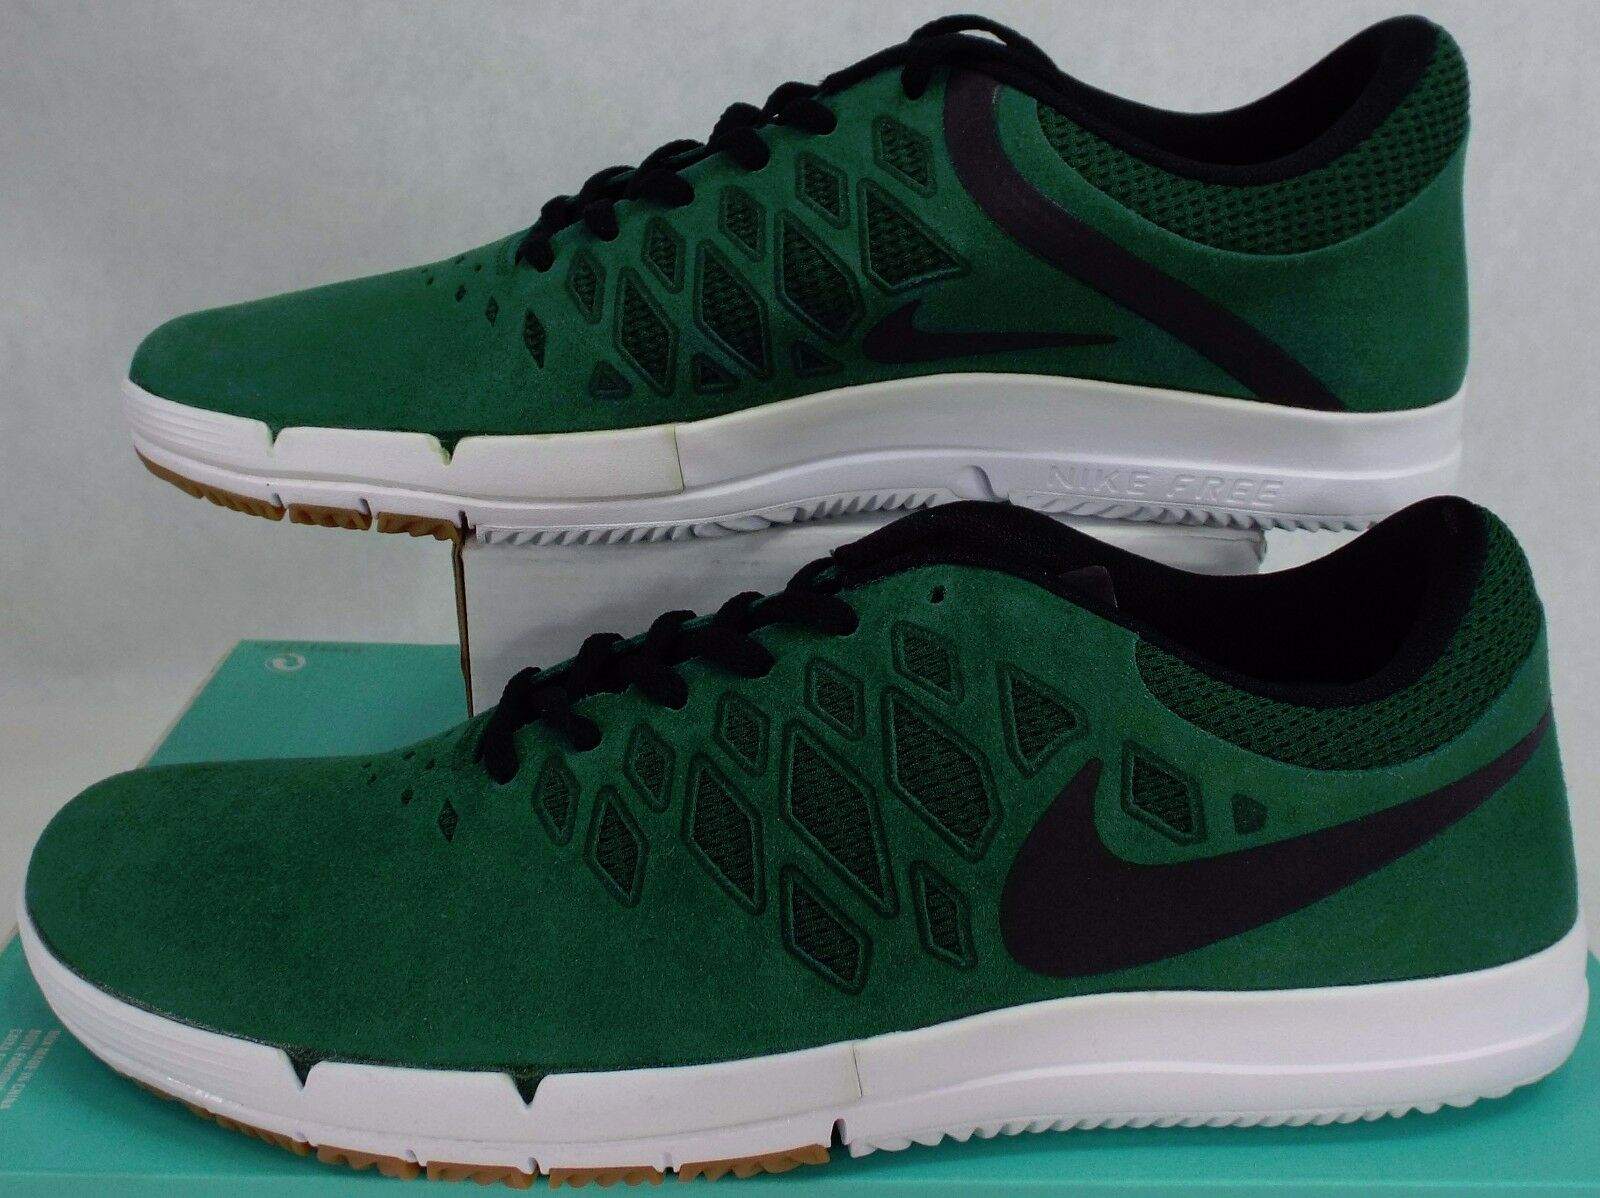 New Mens 13 NIKE Free SB Gorge Green Suede shoes  120 704936-303